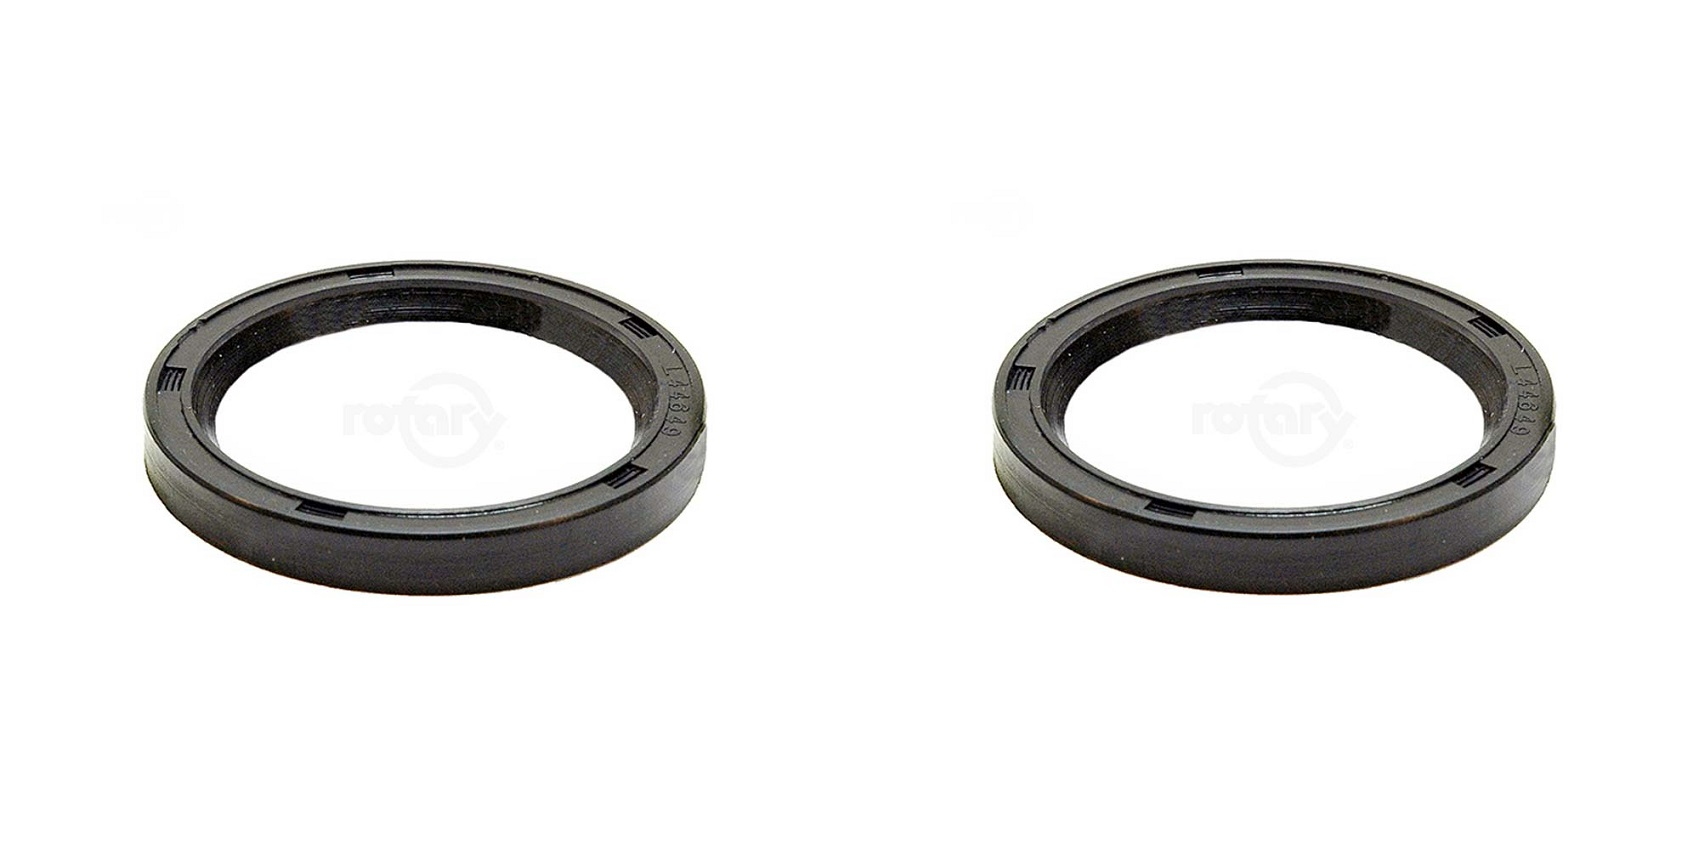 """2 Pk FAST SHIPPING! Oil Grease Seal Replaces Scag 481025 2.0/"""" OD x 1.625/"""" ID"""